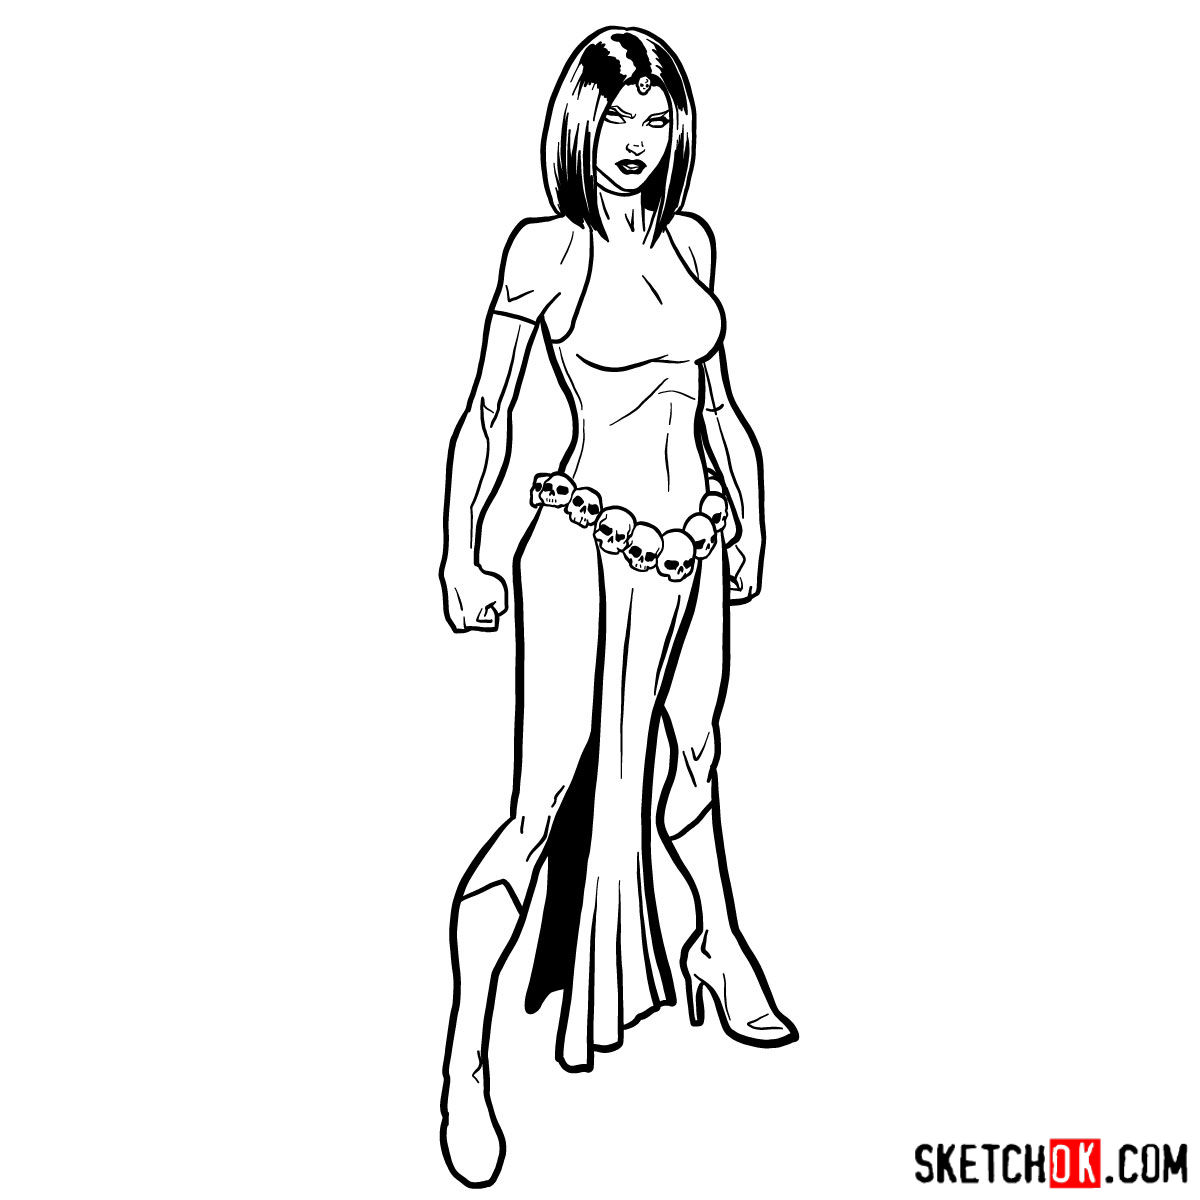 How to draw Mystique from X-Men - step 14